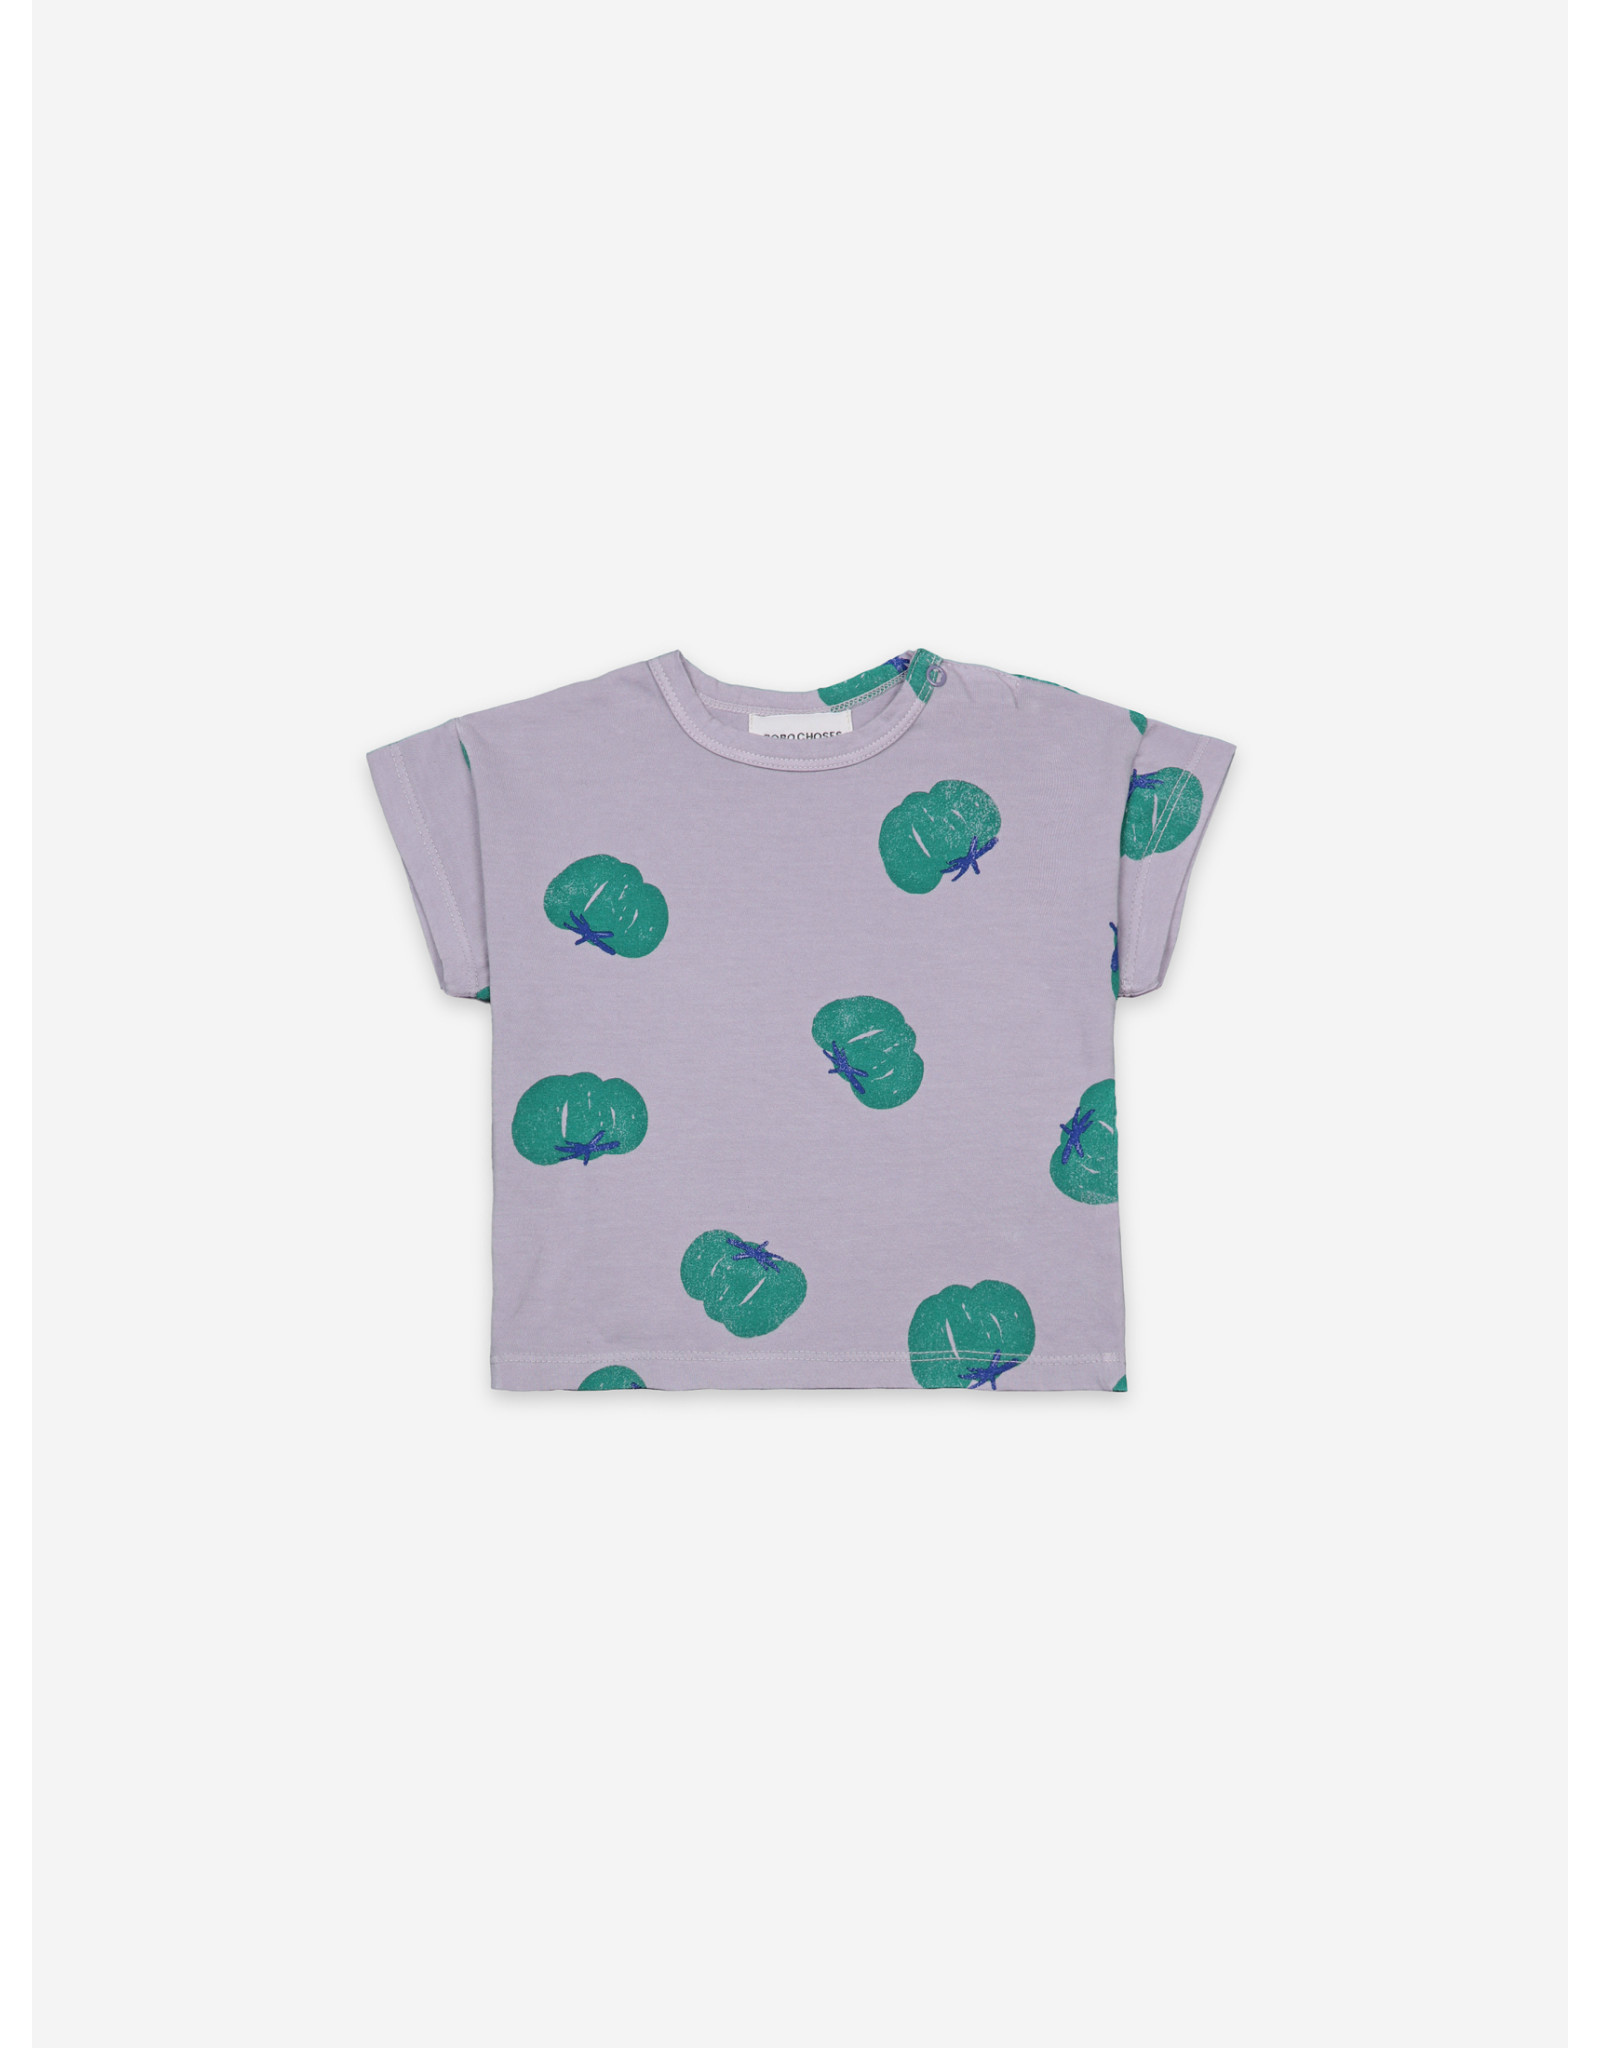 Bobo Choses Tomatoes All Over Short Sleeve T-shirt